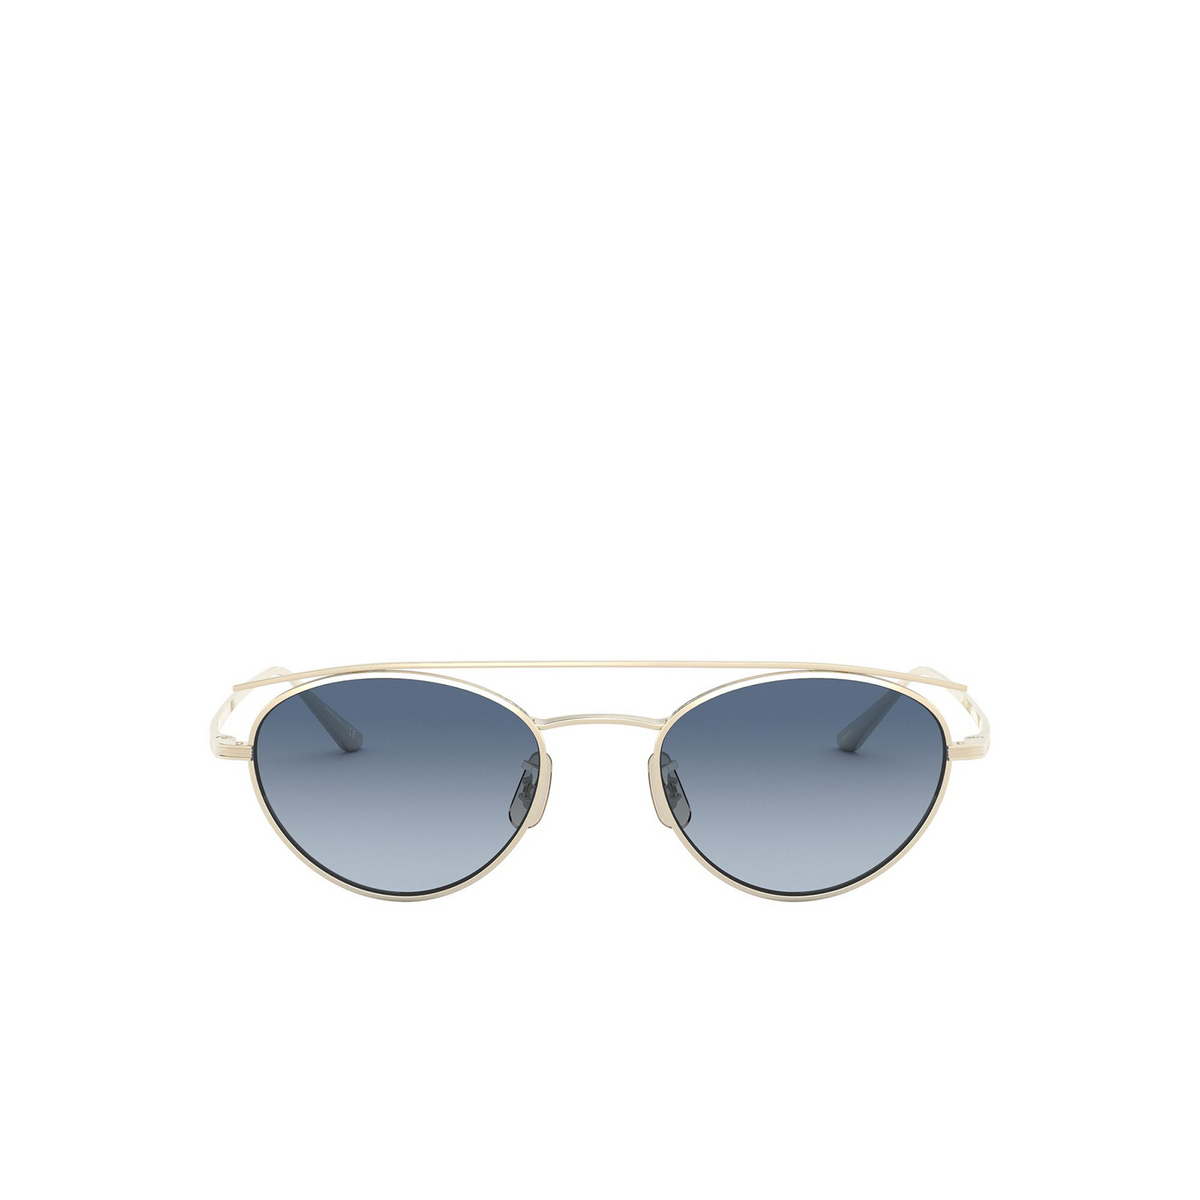 Oliver Peoples® Oval Sunglasses: Hightree OV1258ST color Gold 5035Q8 - front view.